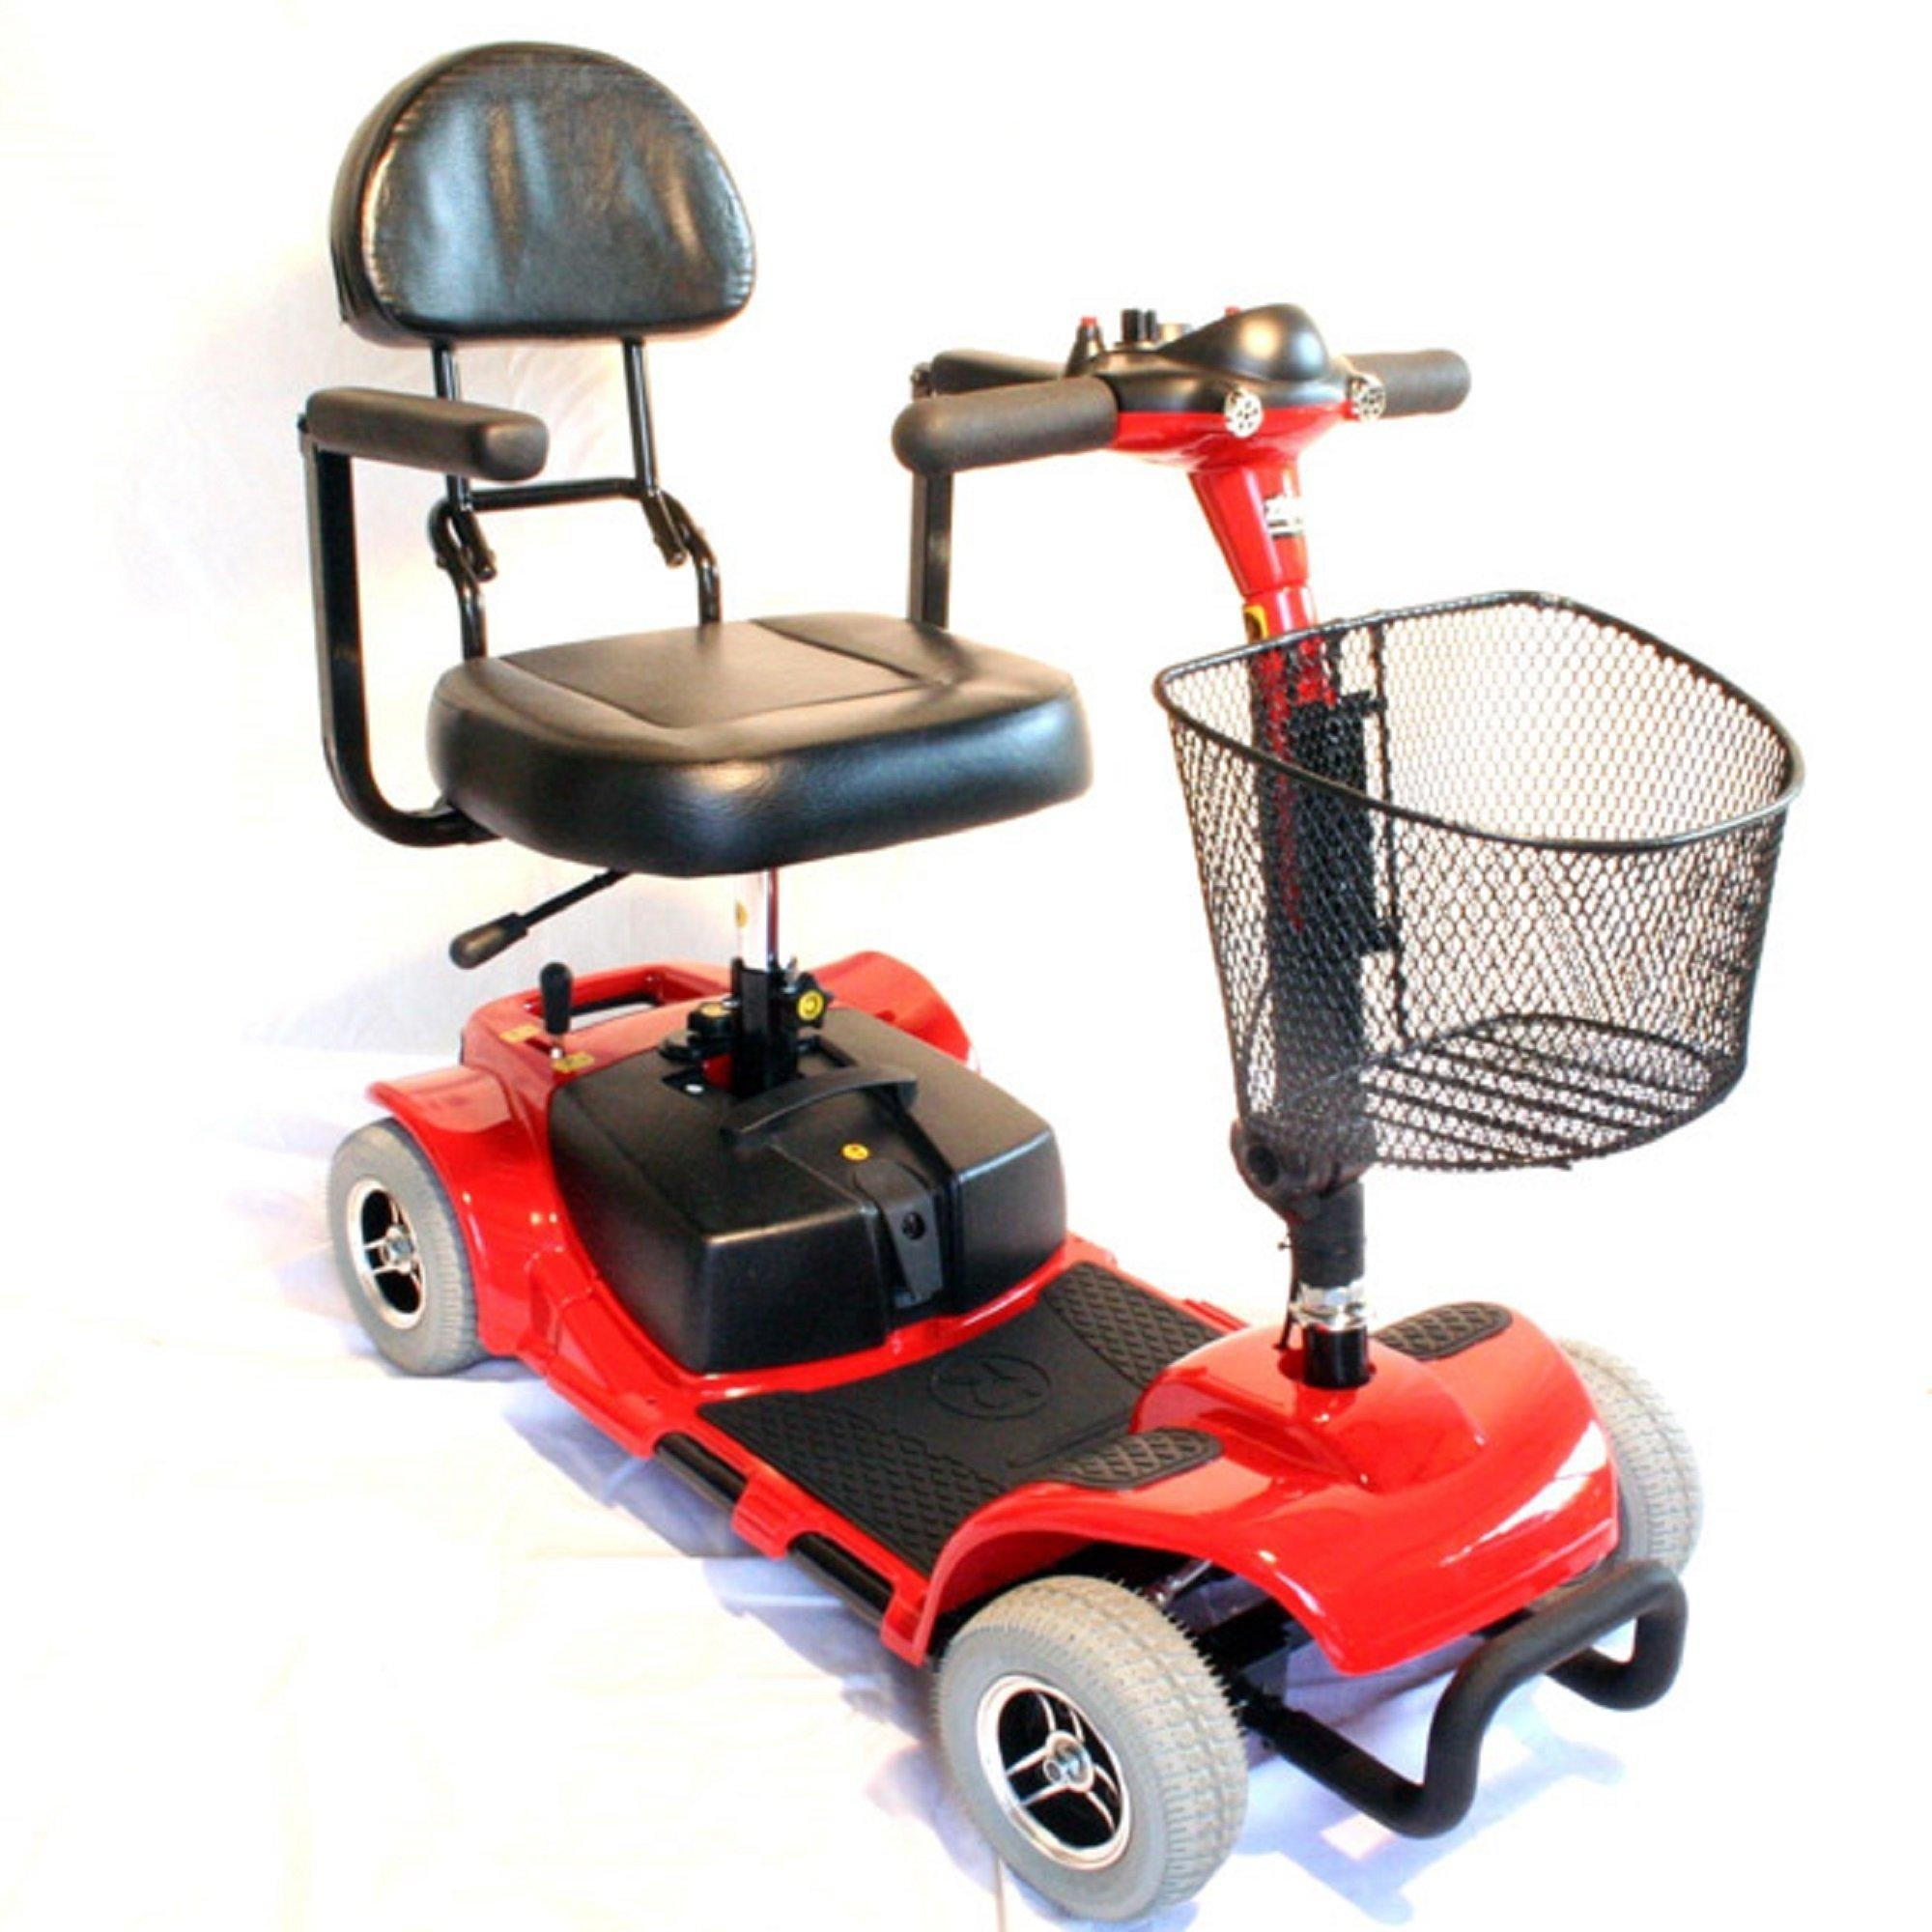 Zip'r Roo 4-Wheel Scooter - Red